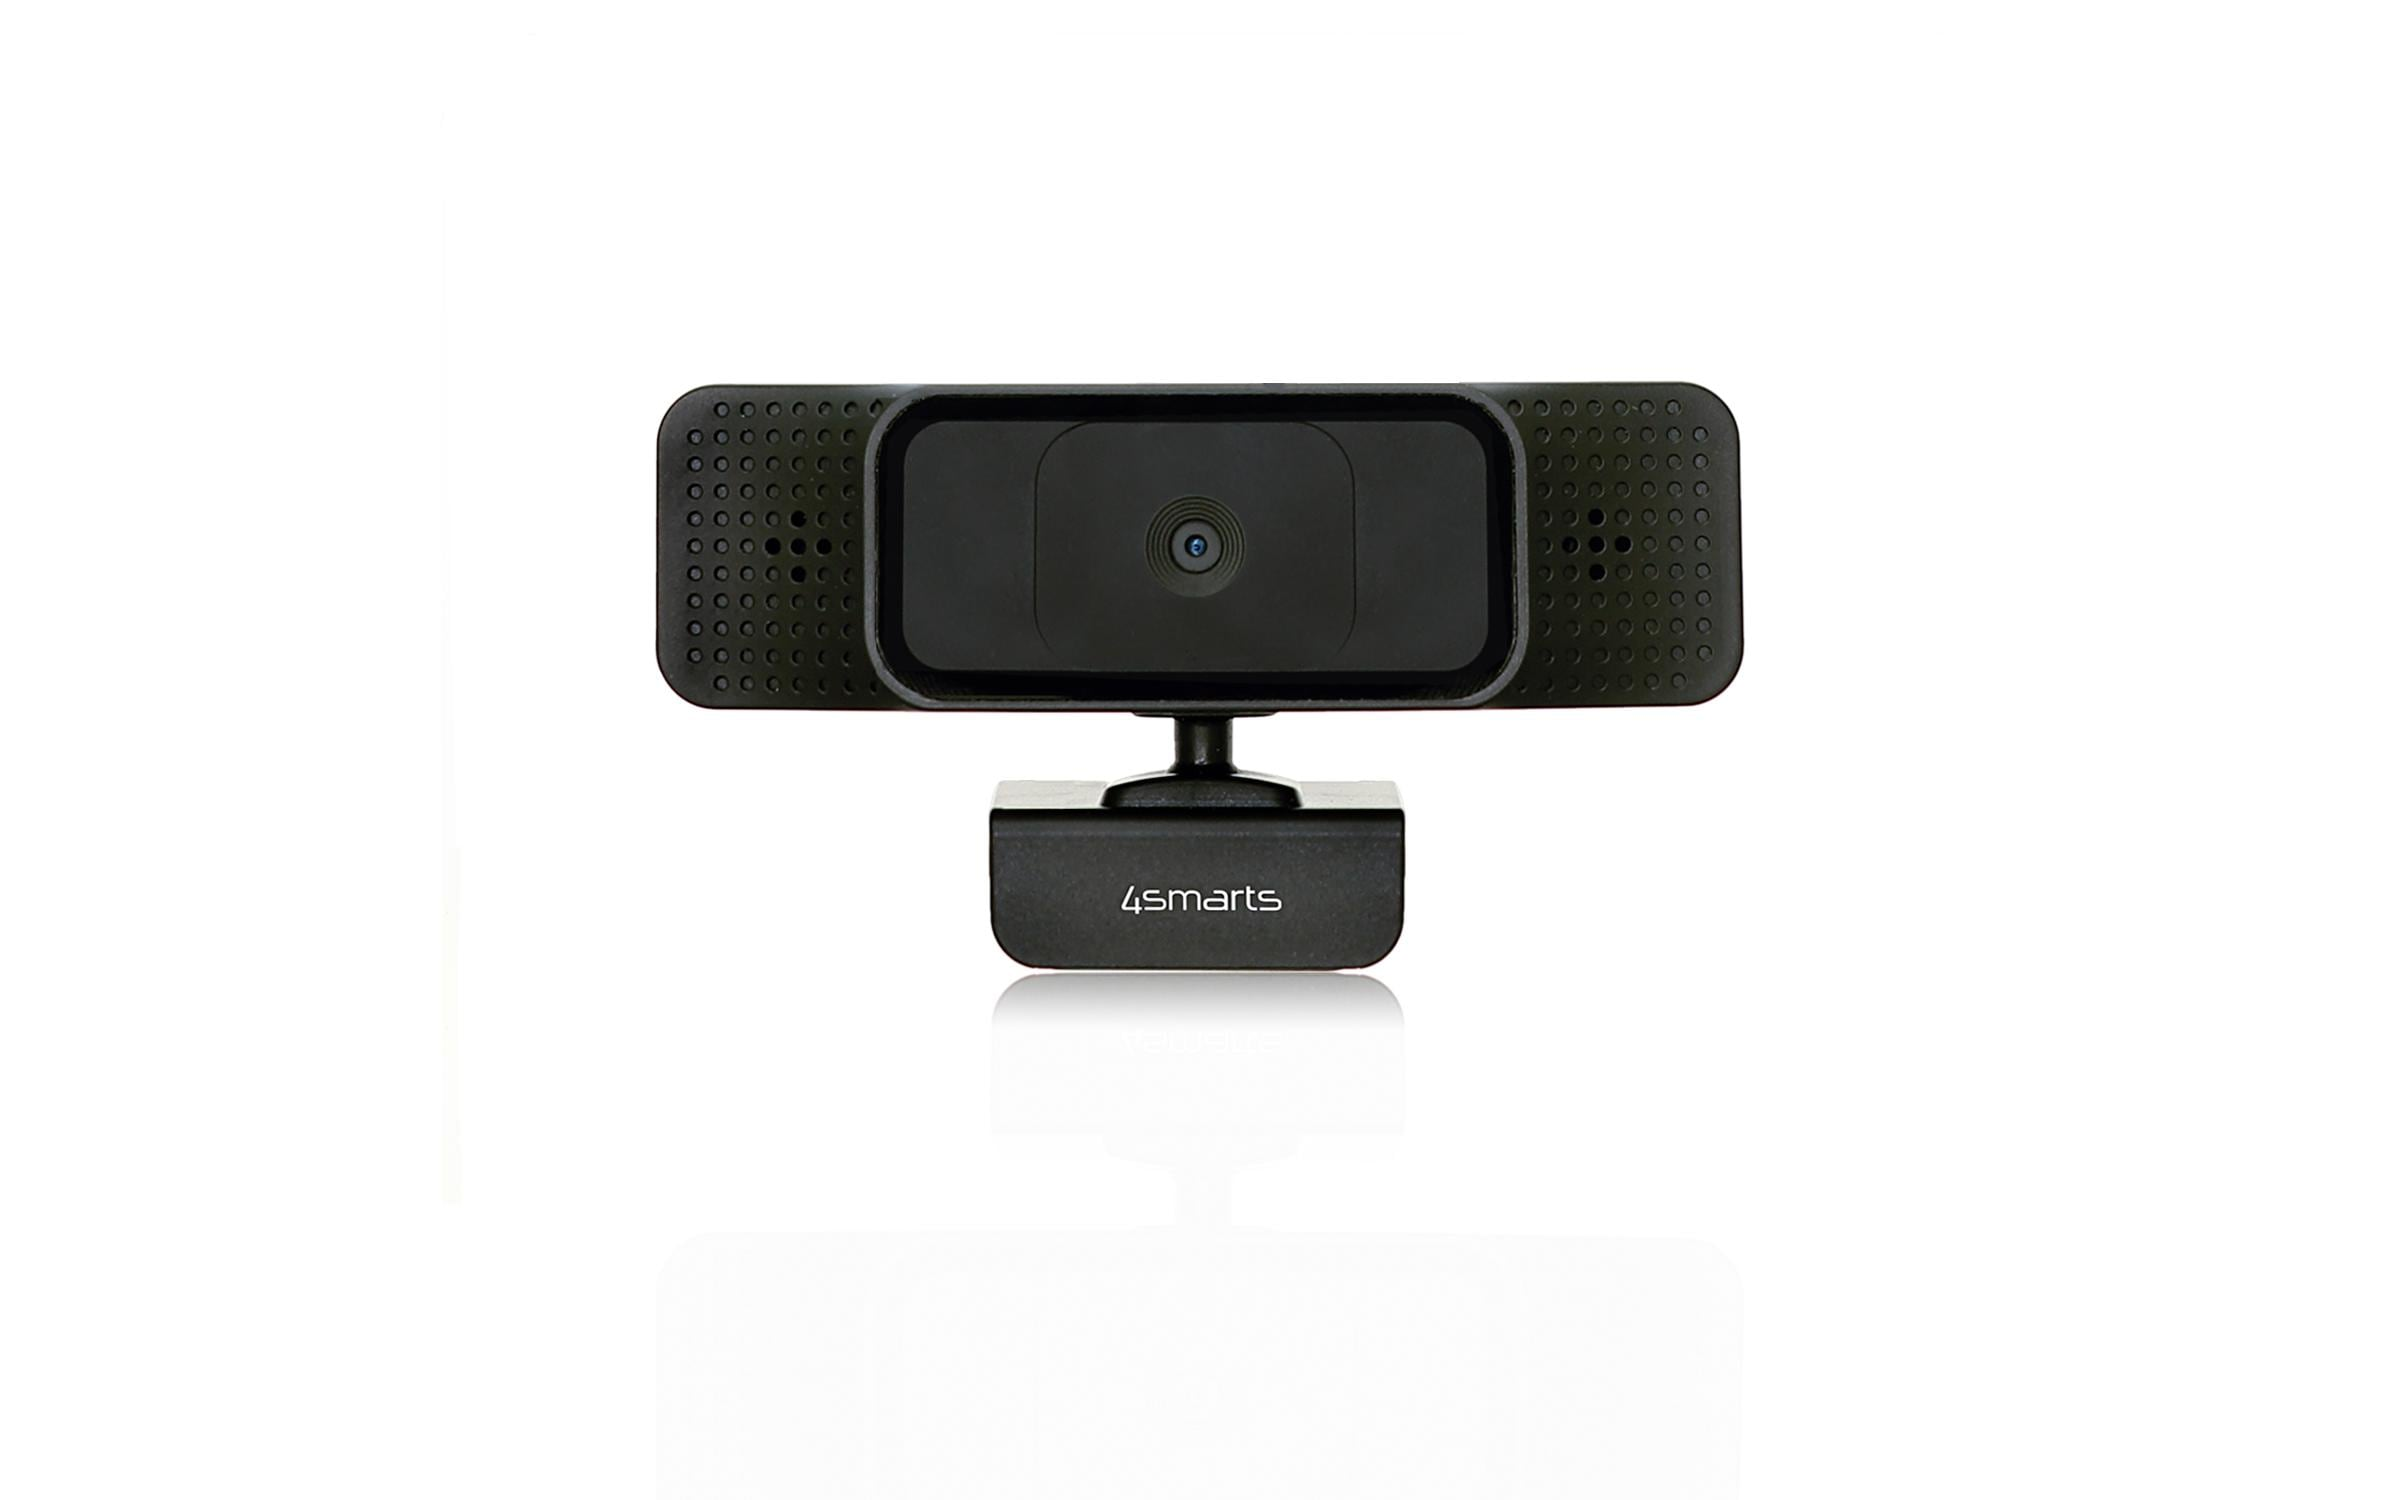 Image of Webcam, 4smarts, »Universal 1080p«